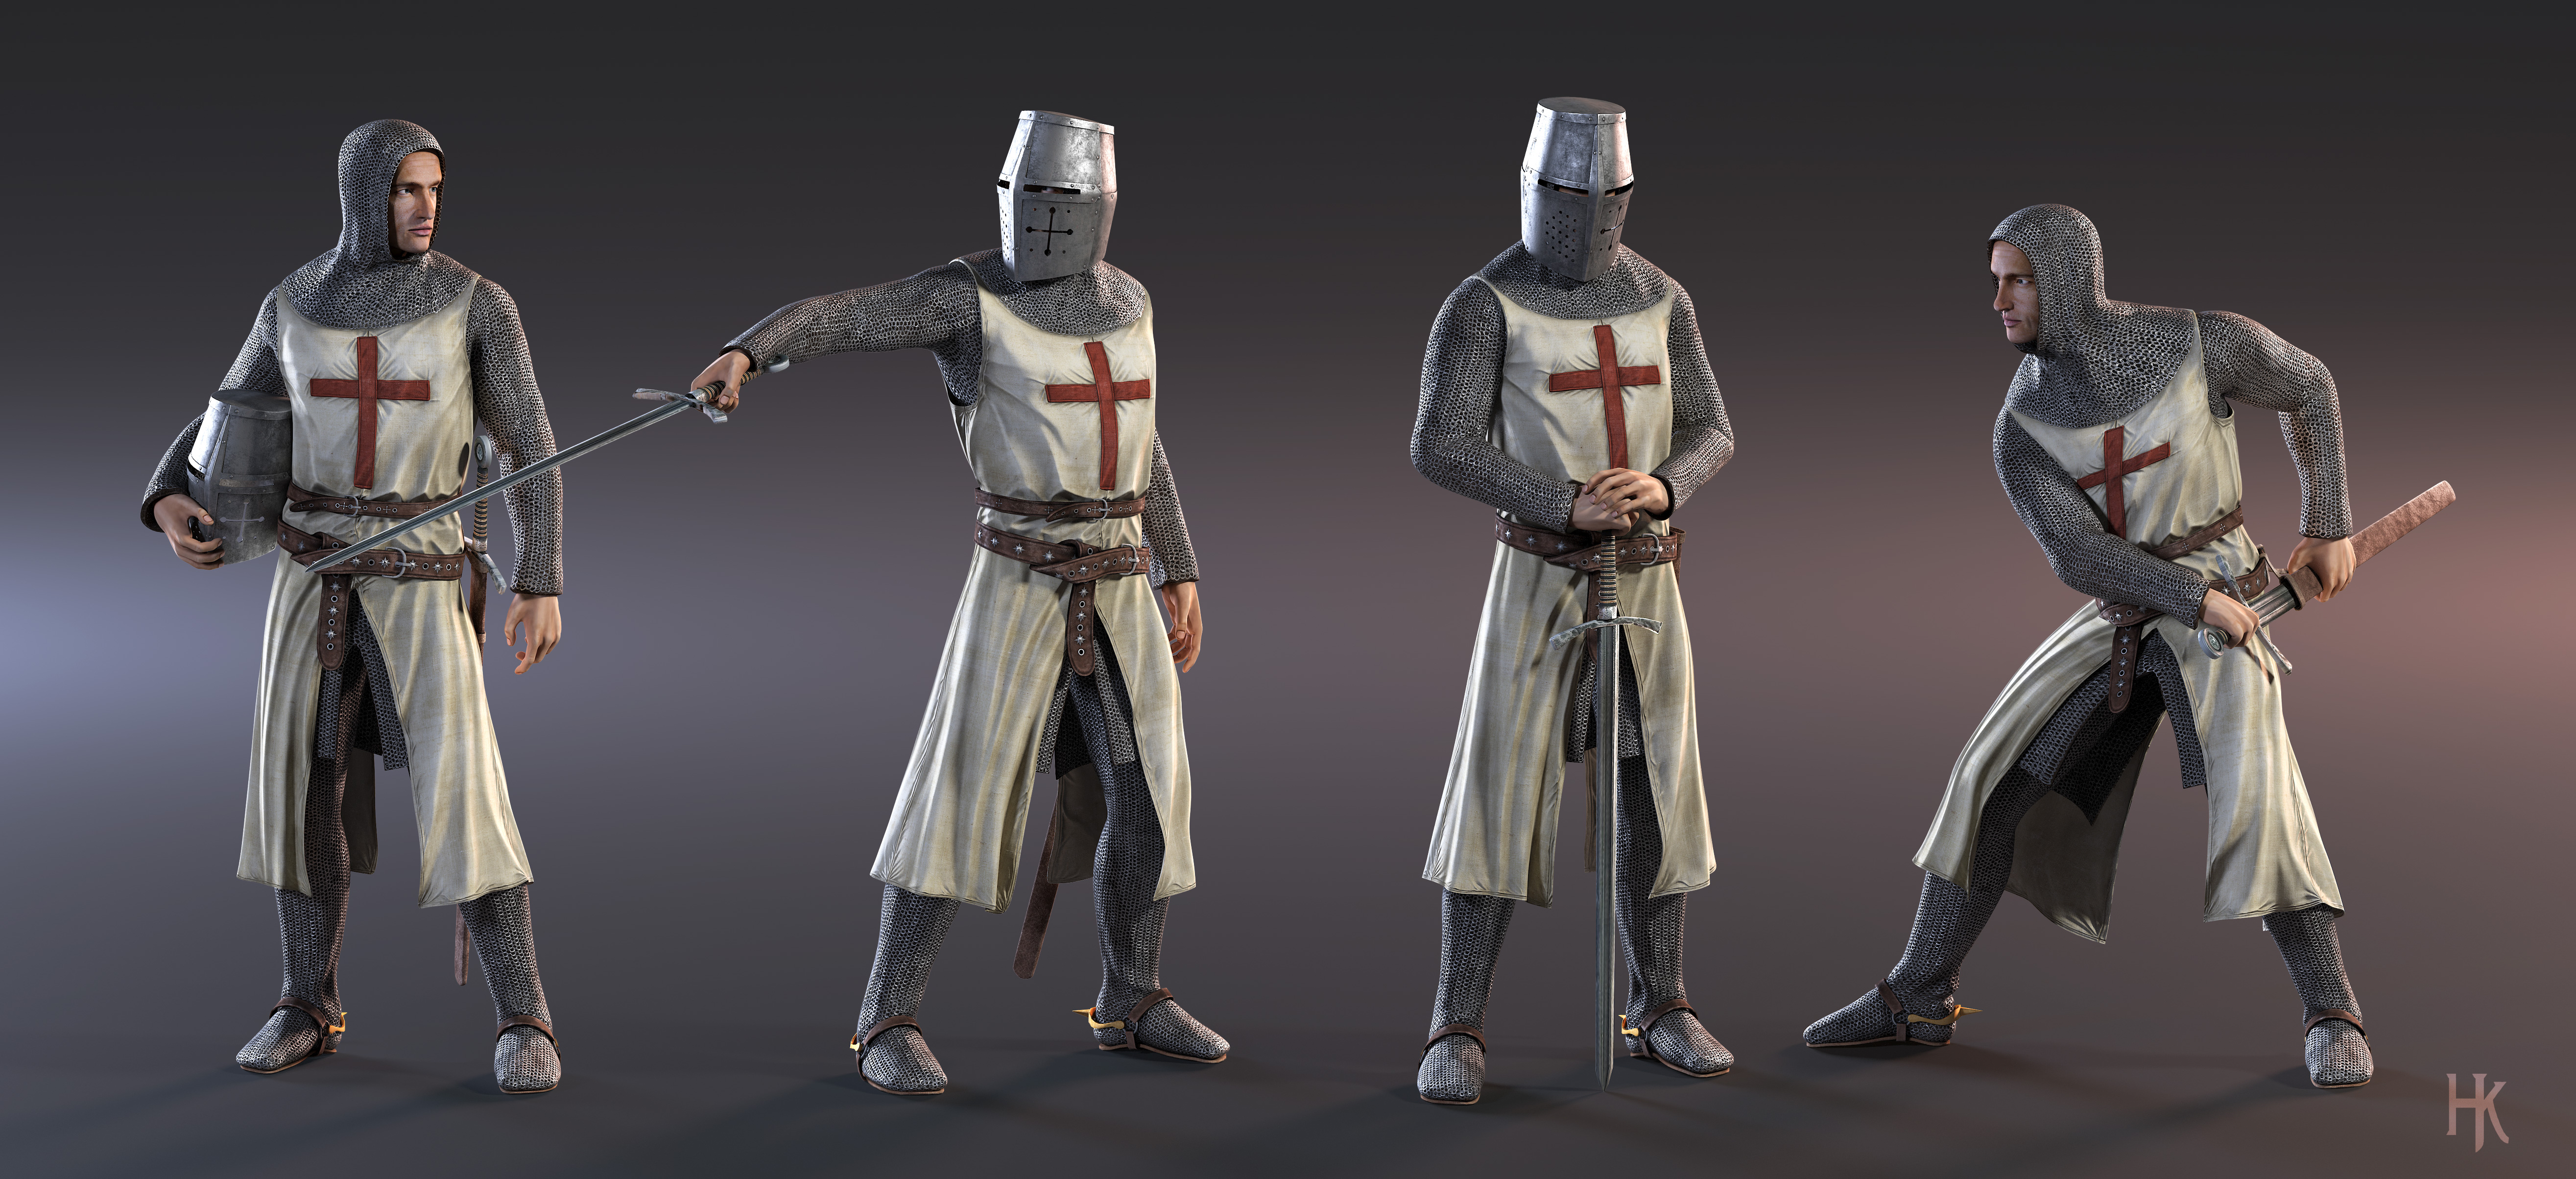 3d character model knight templar by macx85 on deviantart for Decor 3d model